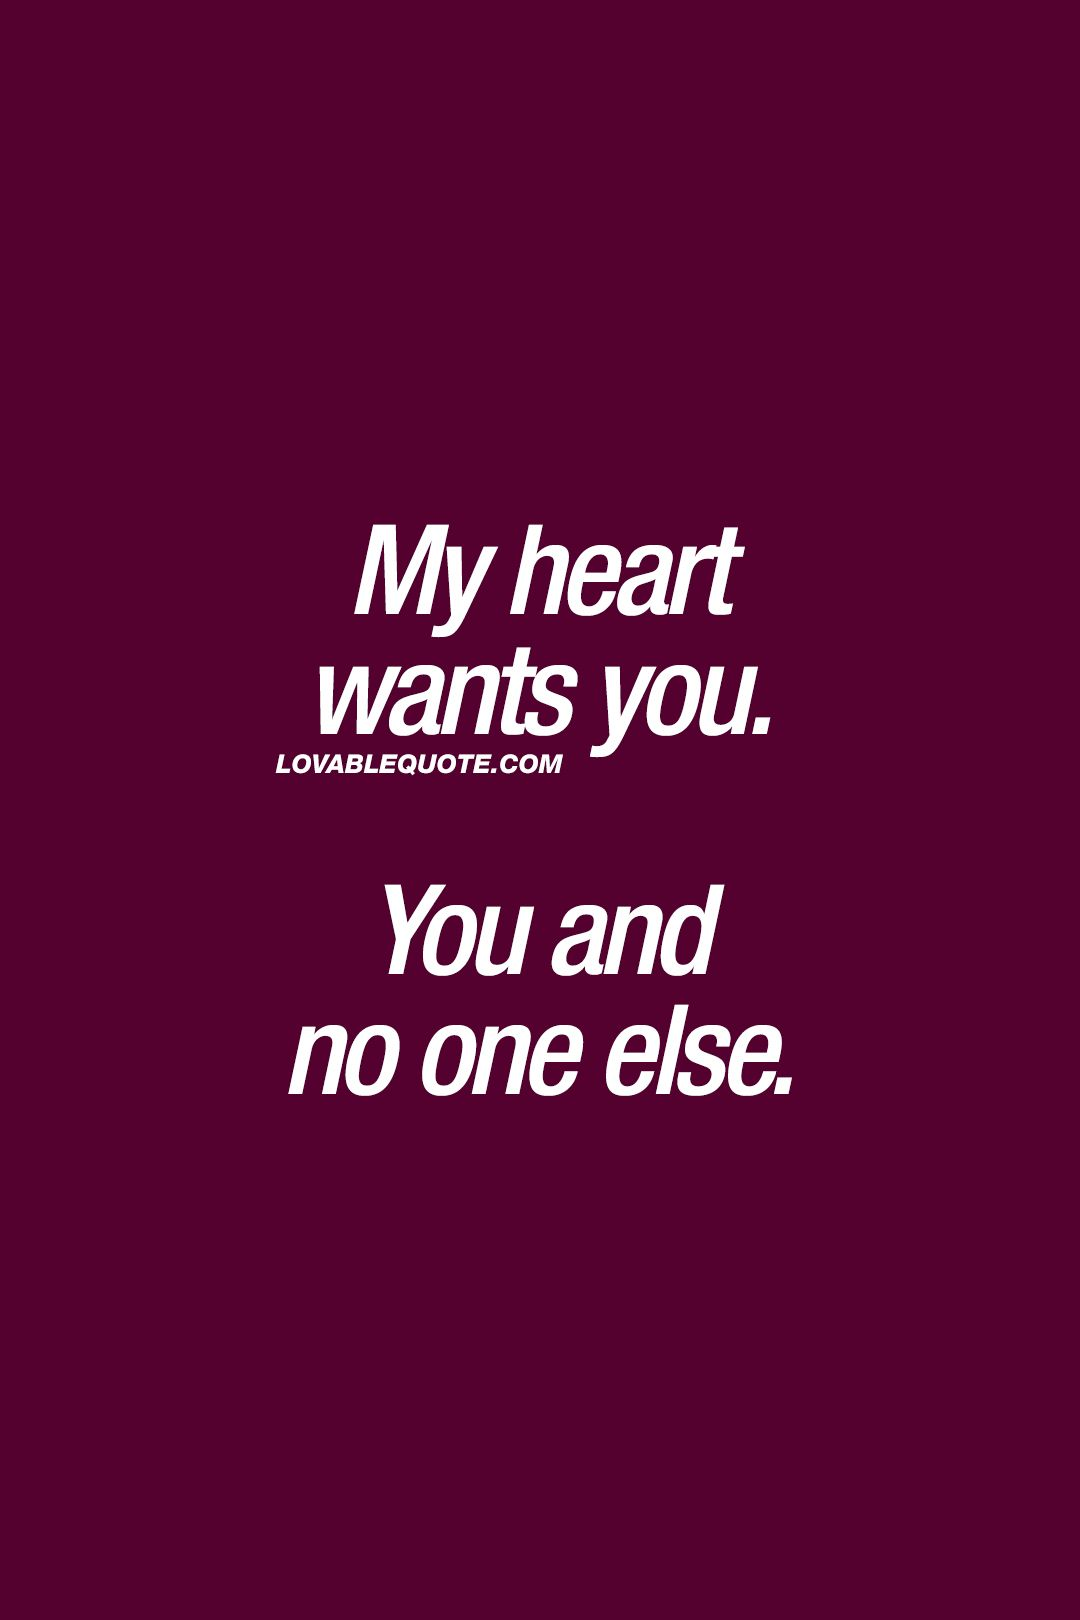 One Day Ill Grow Some Balls And Tell You Till Then We Friends Breaking My Heart Every Time I Look At You Kou Love Quotes Soulmate Love Quotes Romantic Quotes